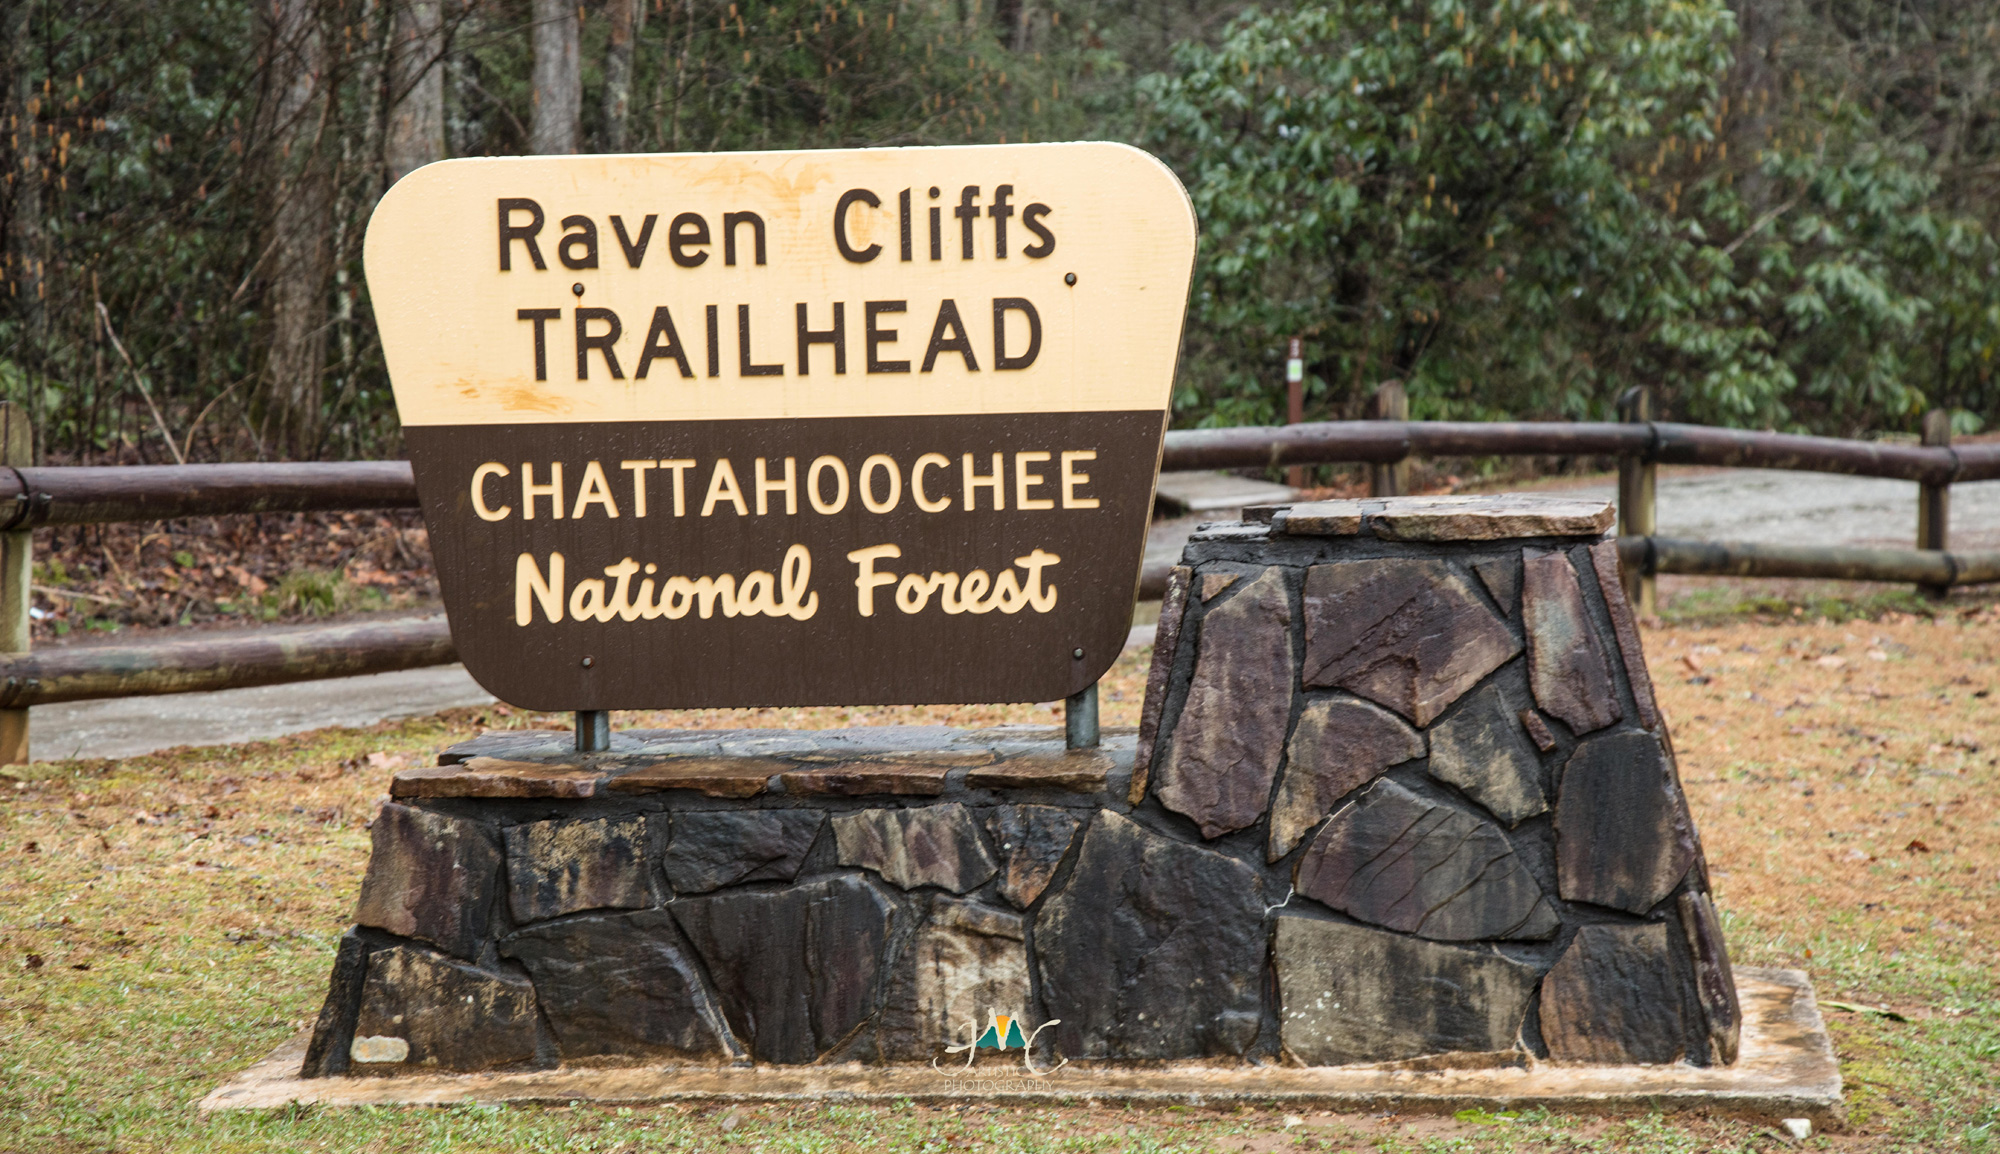 Raven Cliffs Trailhead sign. Photo by JMC Artistic Photography